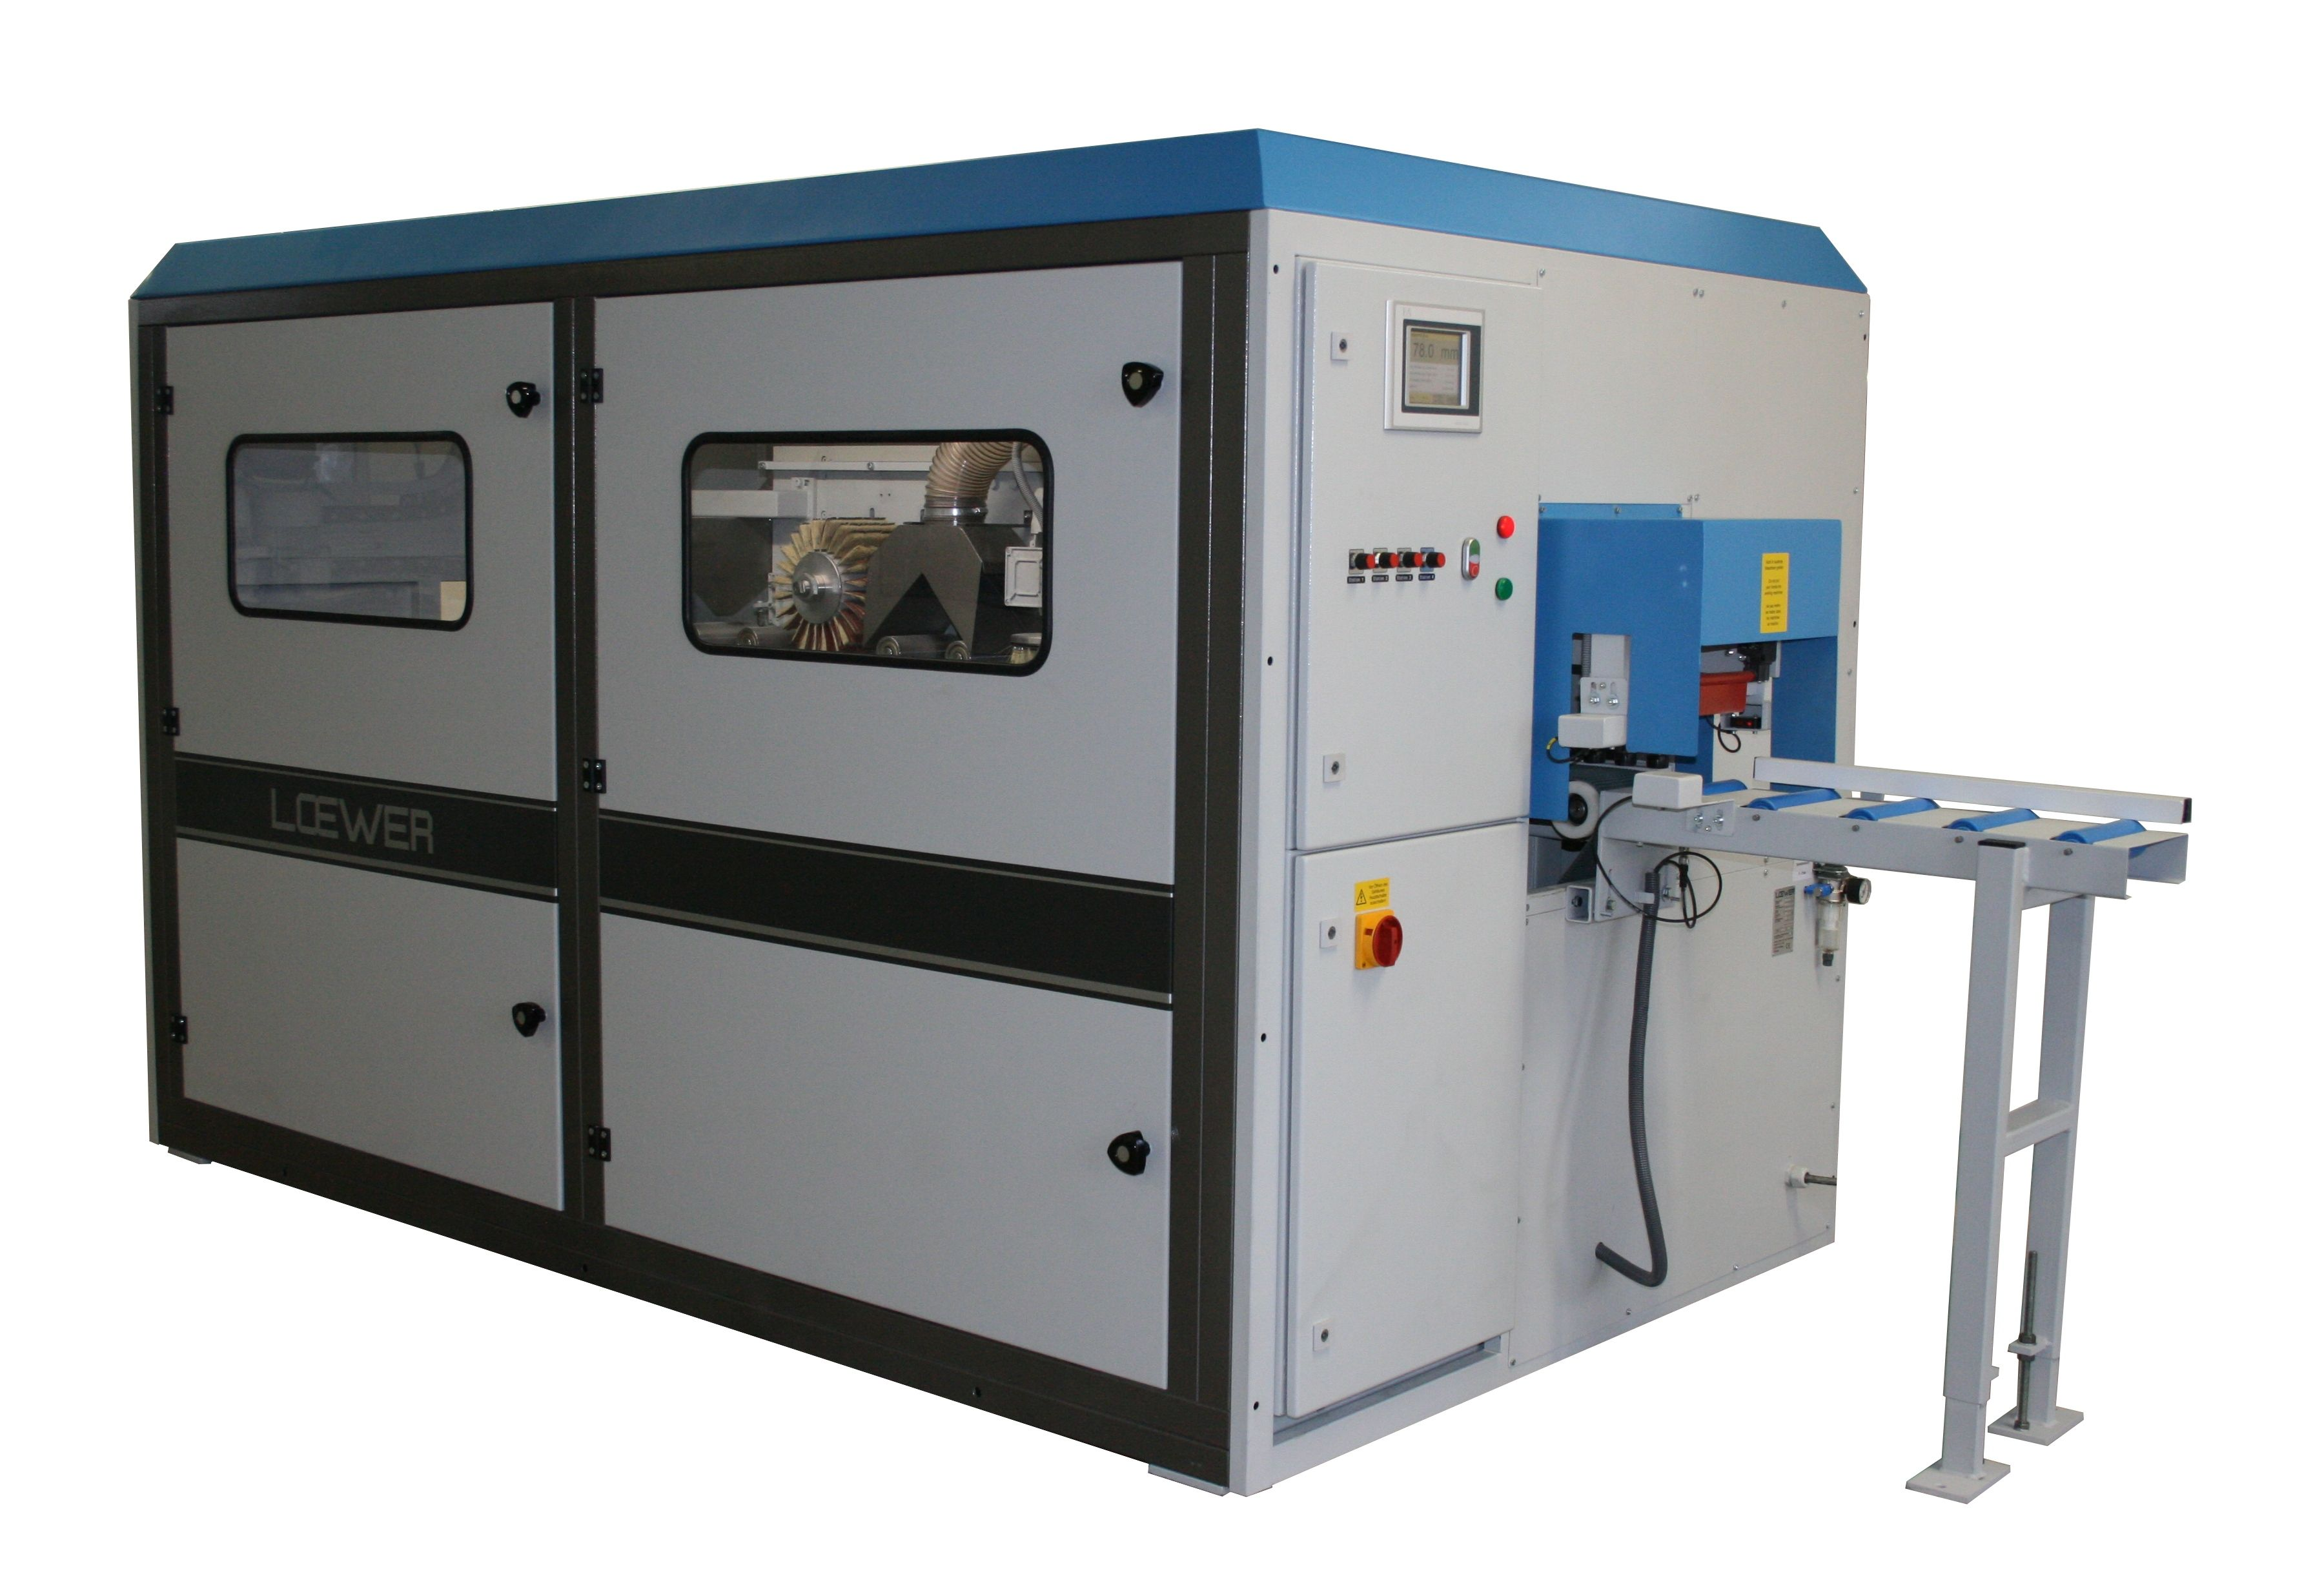 LeistoMat - Finish and intermediate sanding machine for frequently changing profiles